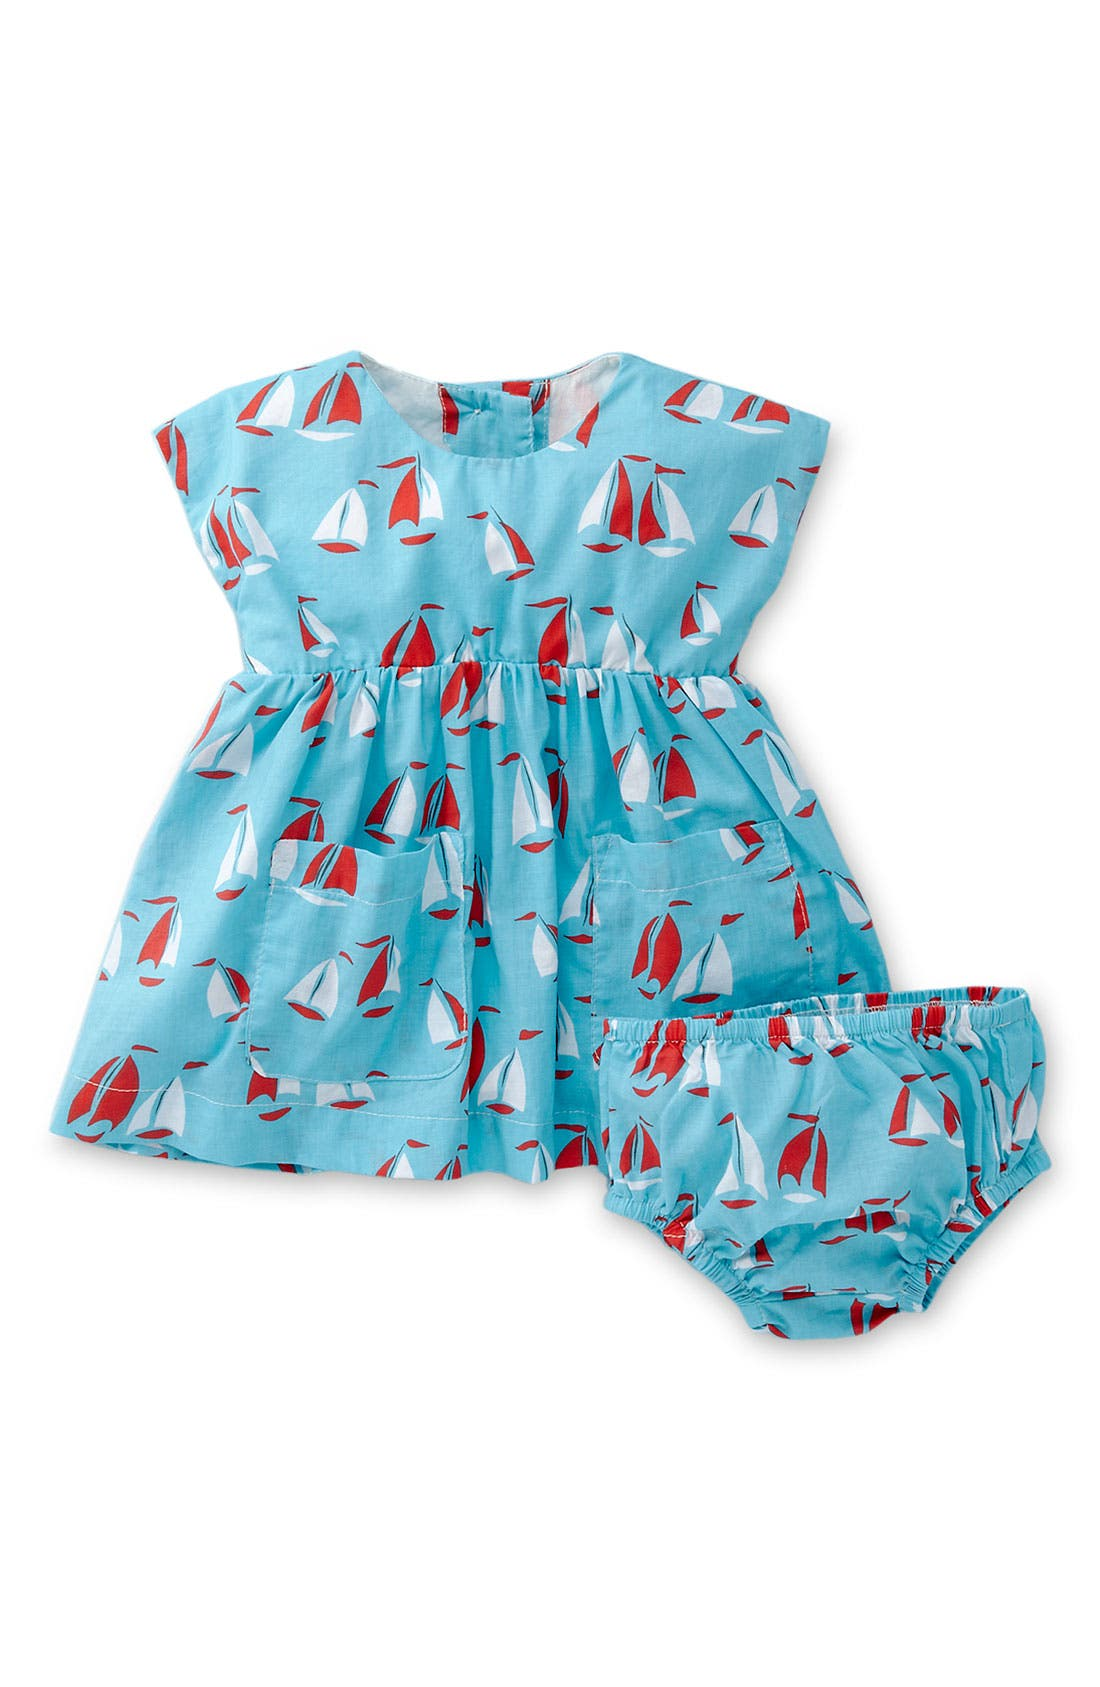 Main Image - Mini Boden 'Fifties' Dress (Infant)